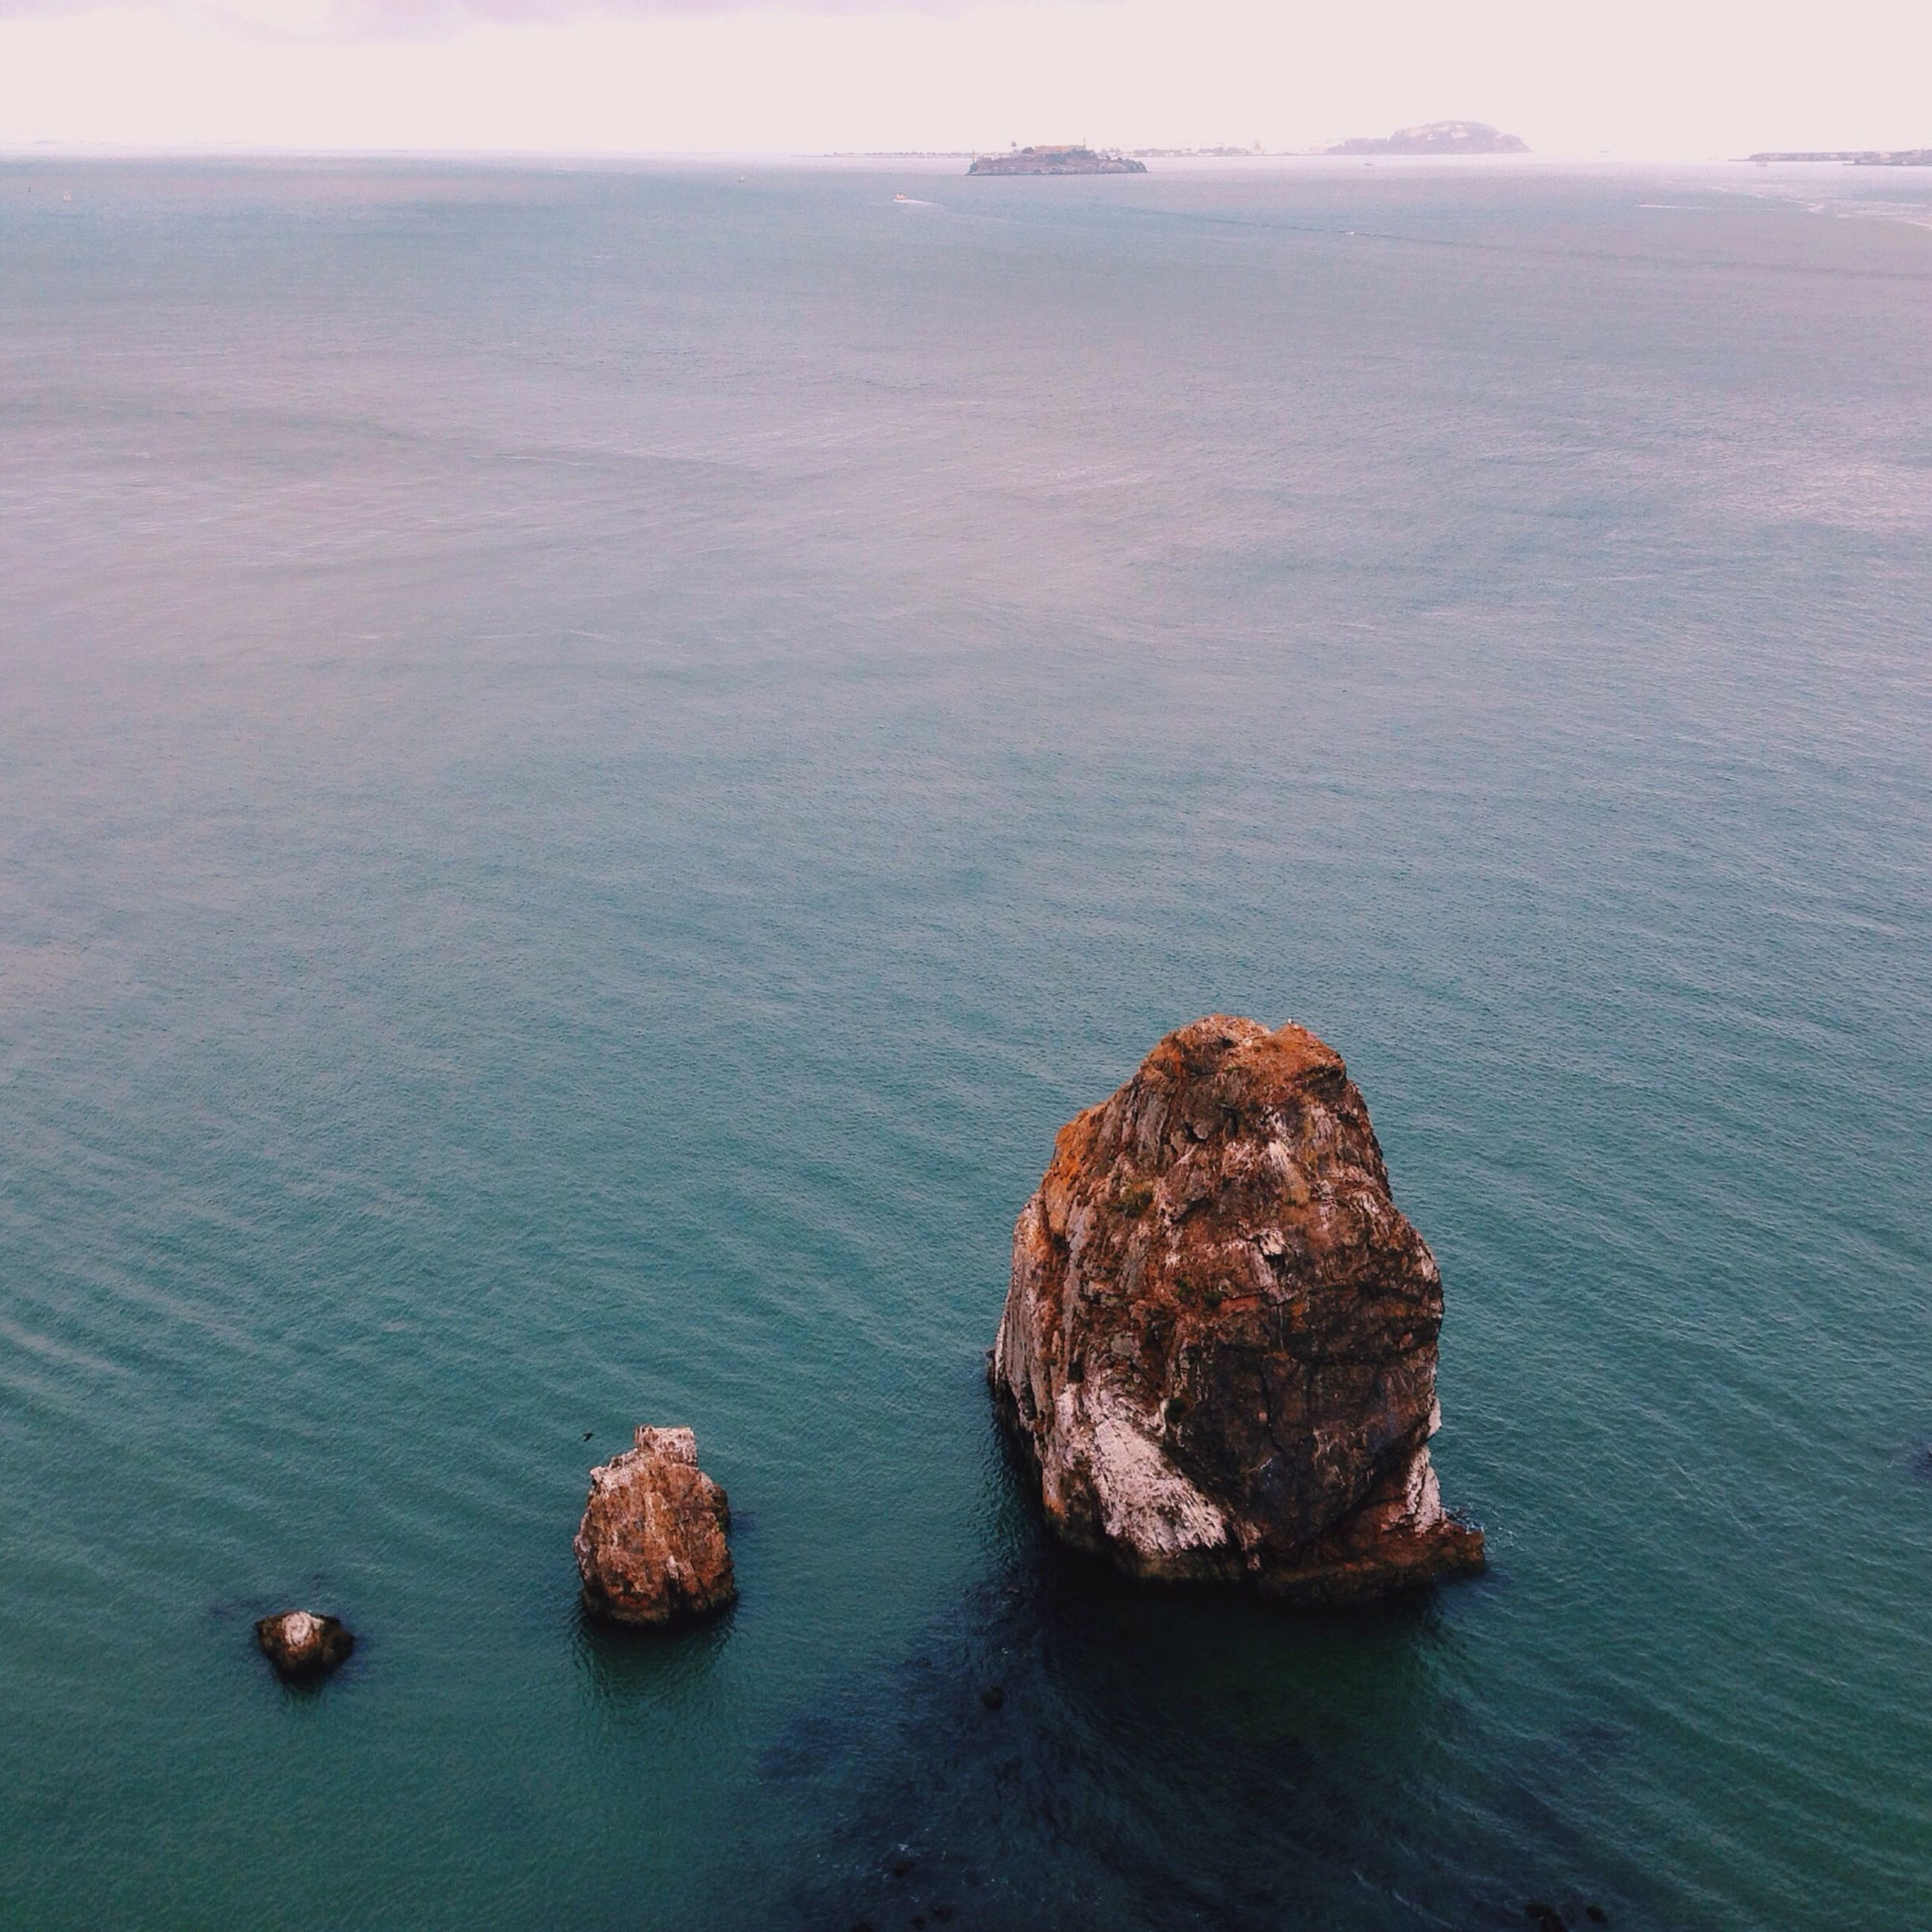 water, sea, tranquil scene, tranquility, scenics, beauty in nature, rock - object, nature, horizon over water, rock formation, rock, idyllic, sky, waterfront, blue, rippled, outdoors, no people, high angle view, day